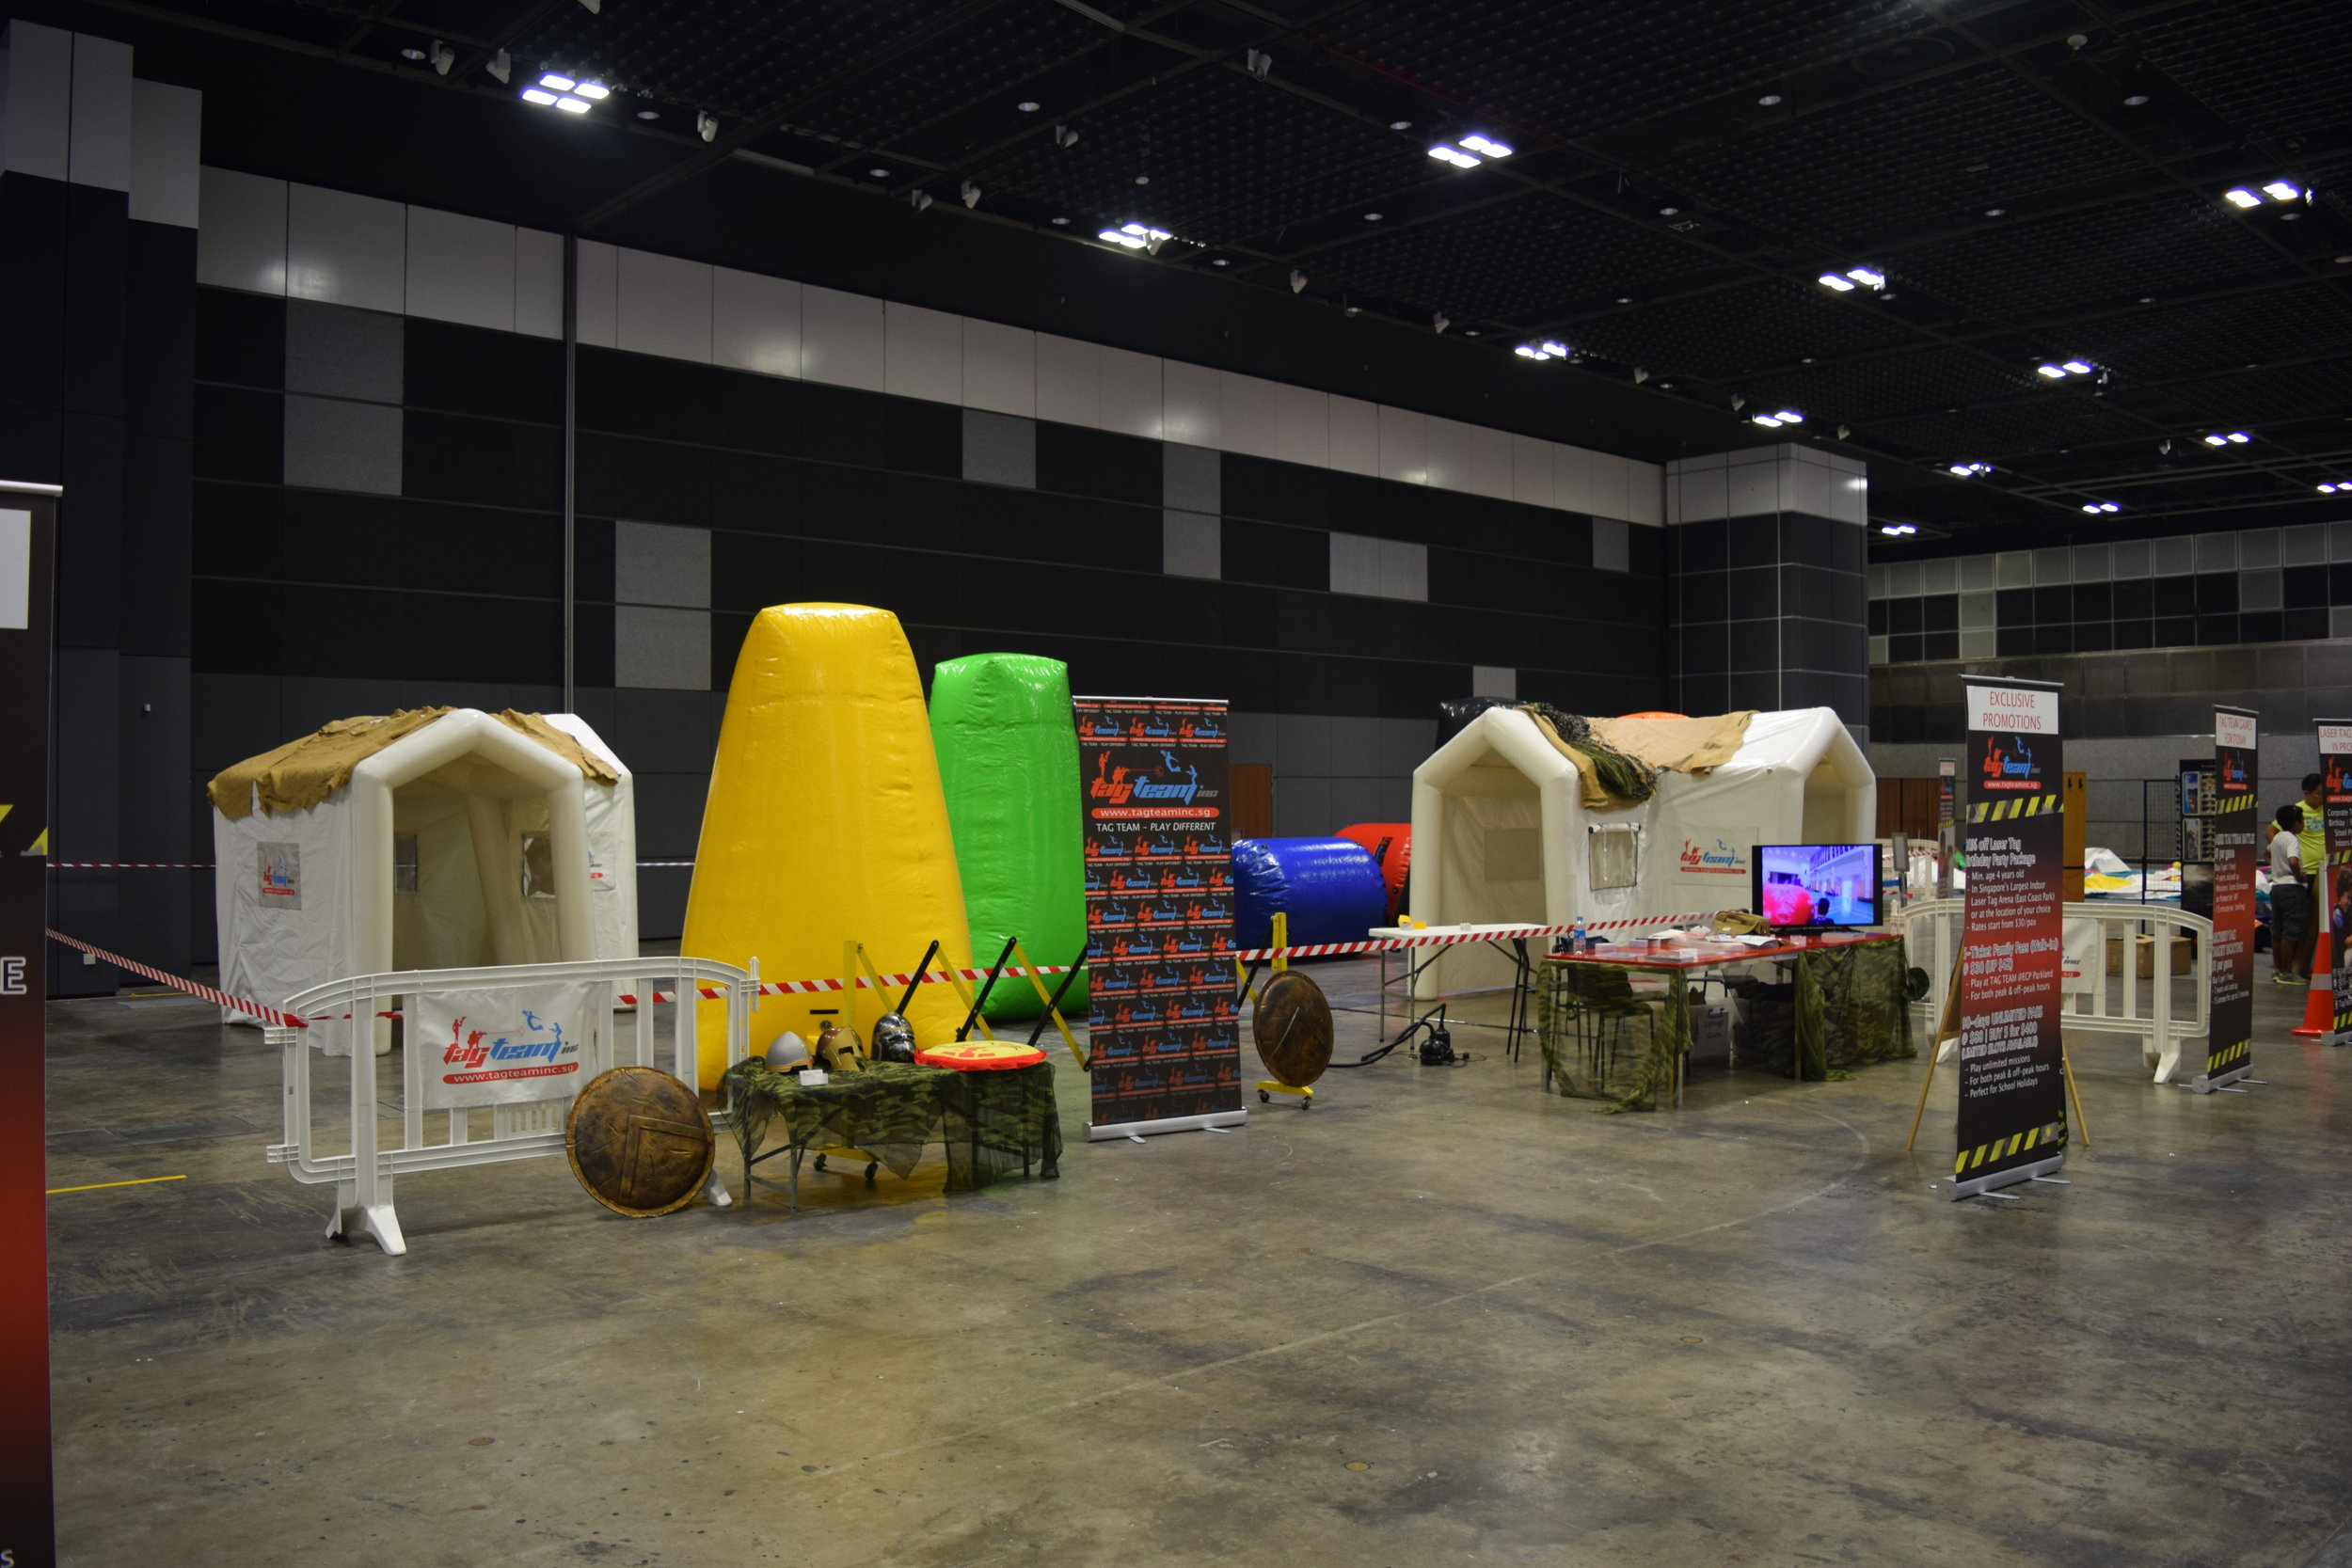 Large Scale Exhibition & Expos -The Kidz Academy Exhibition  Venue: Suntec Convention Hall  Target Audience: Children and Families